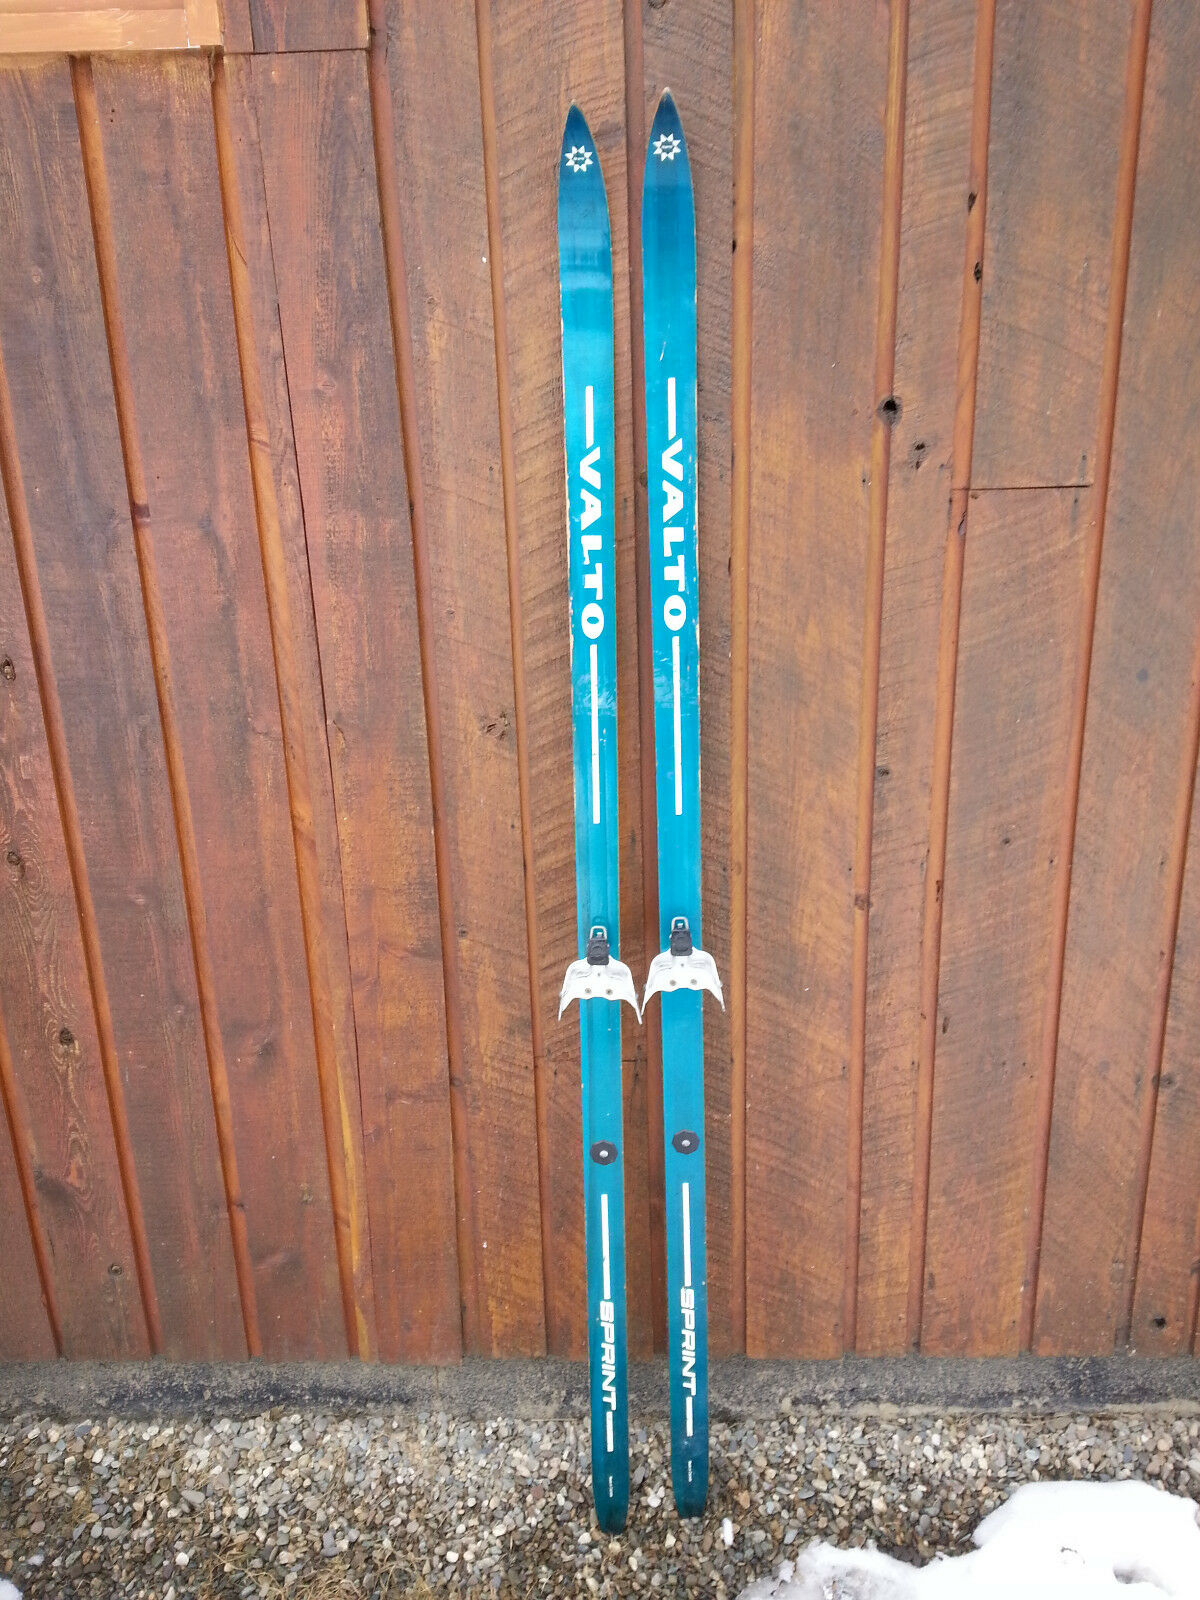 VINTAGE Wooden  72  Skis Signed VALTO with  blueE Finish  online shopping sports